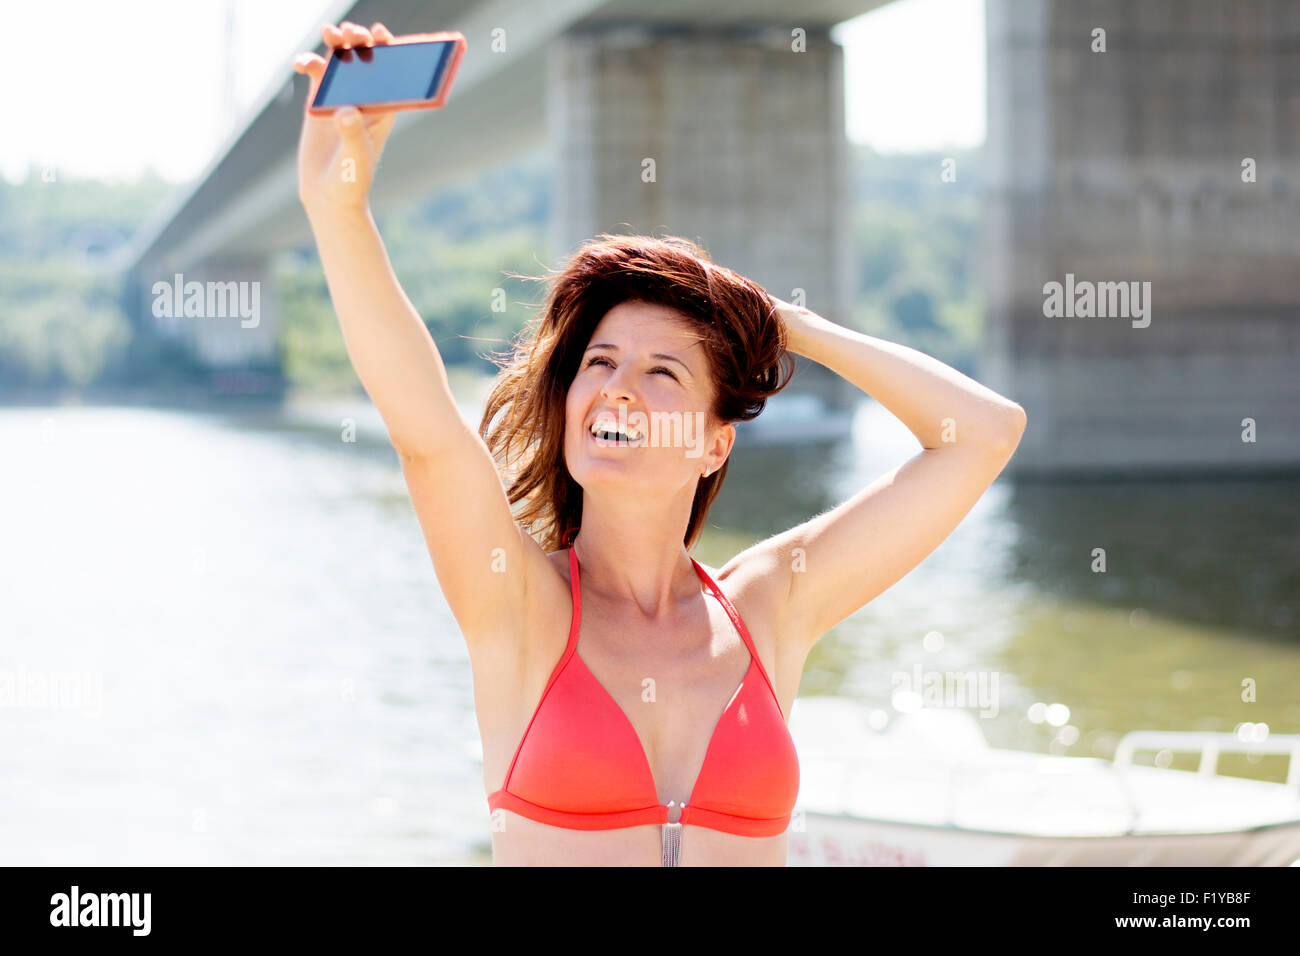 80fe9f31cc Good looking woman wearing red bikini taking self portrait on a beach, she  is feeling relaxed and happy,she is smiling.